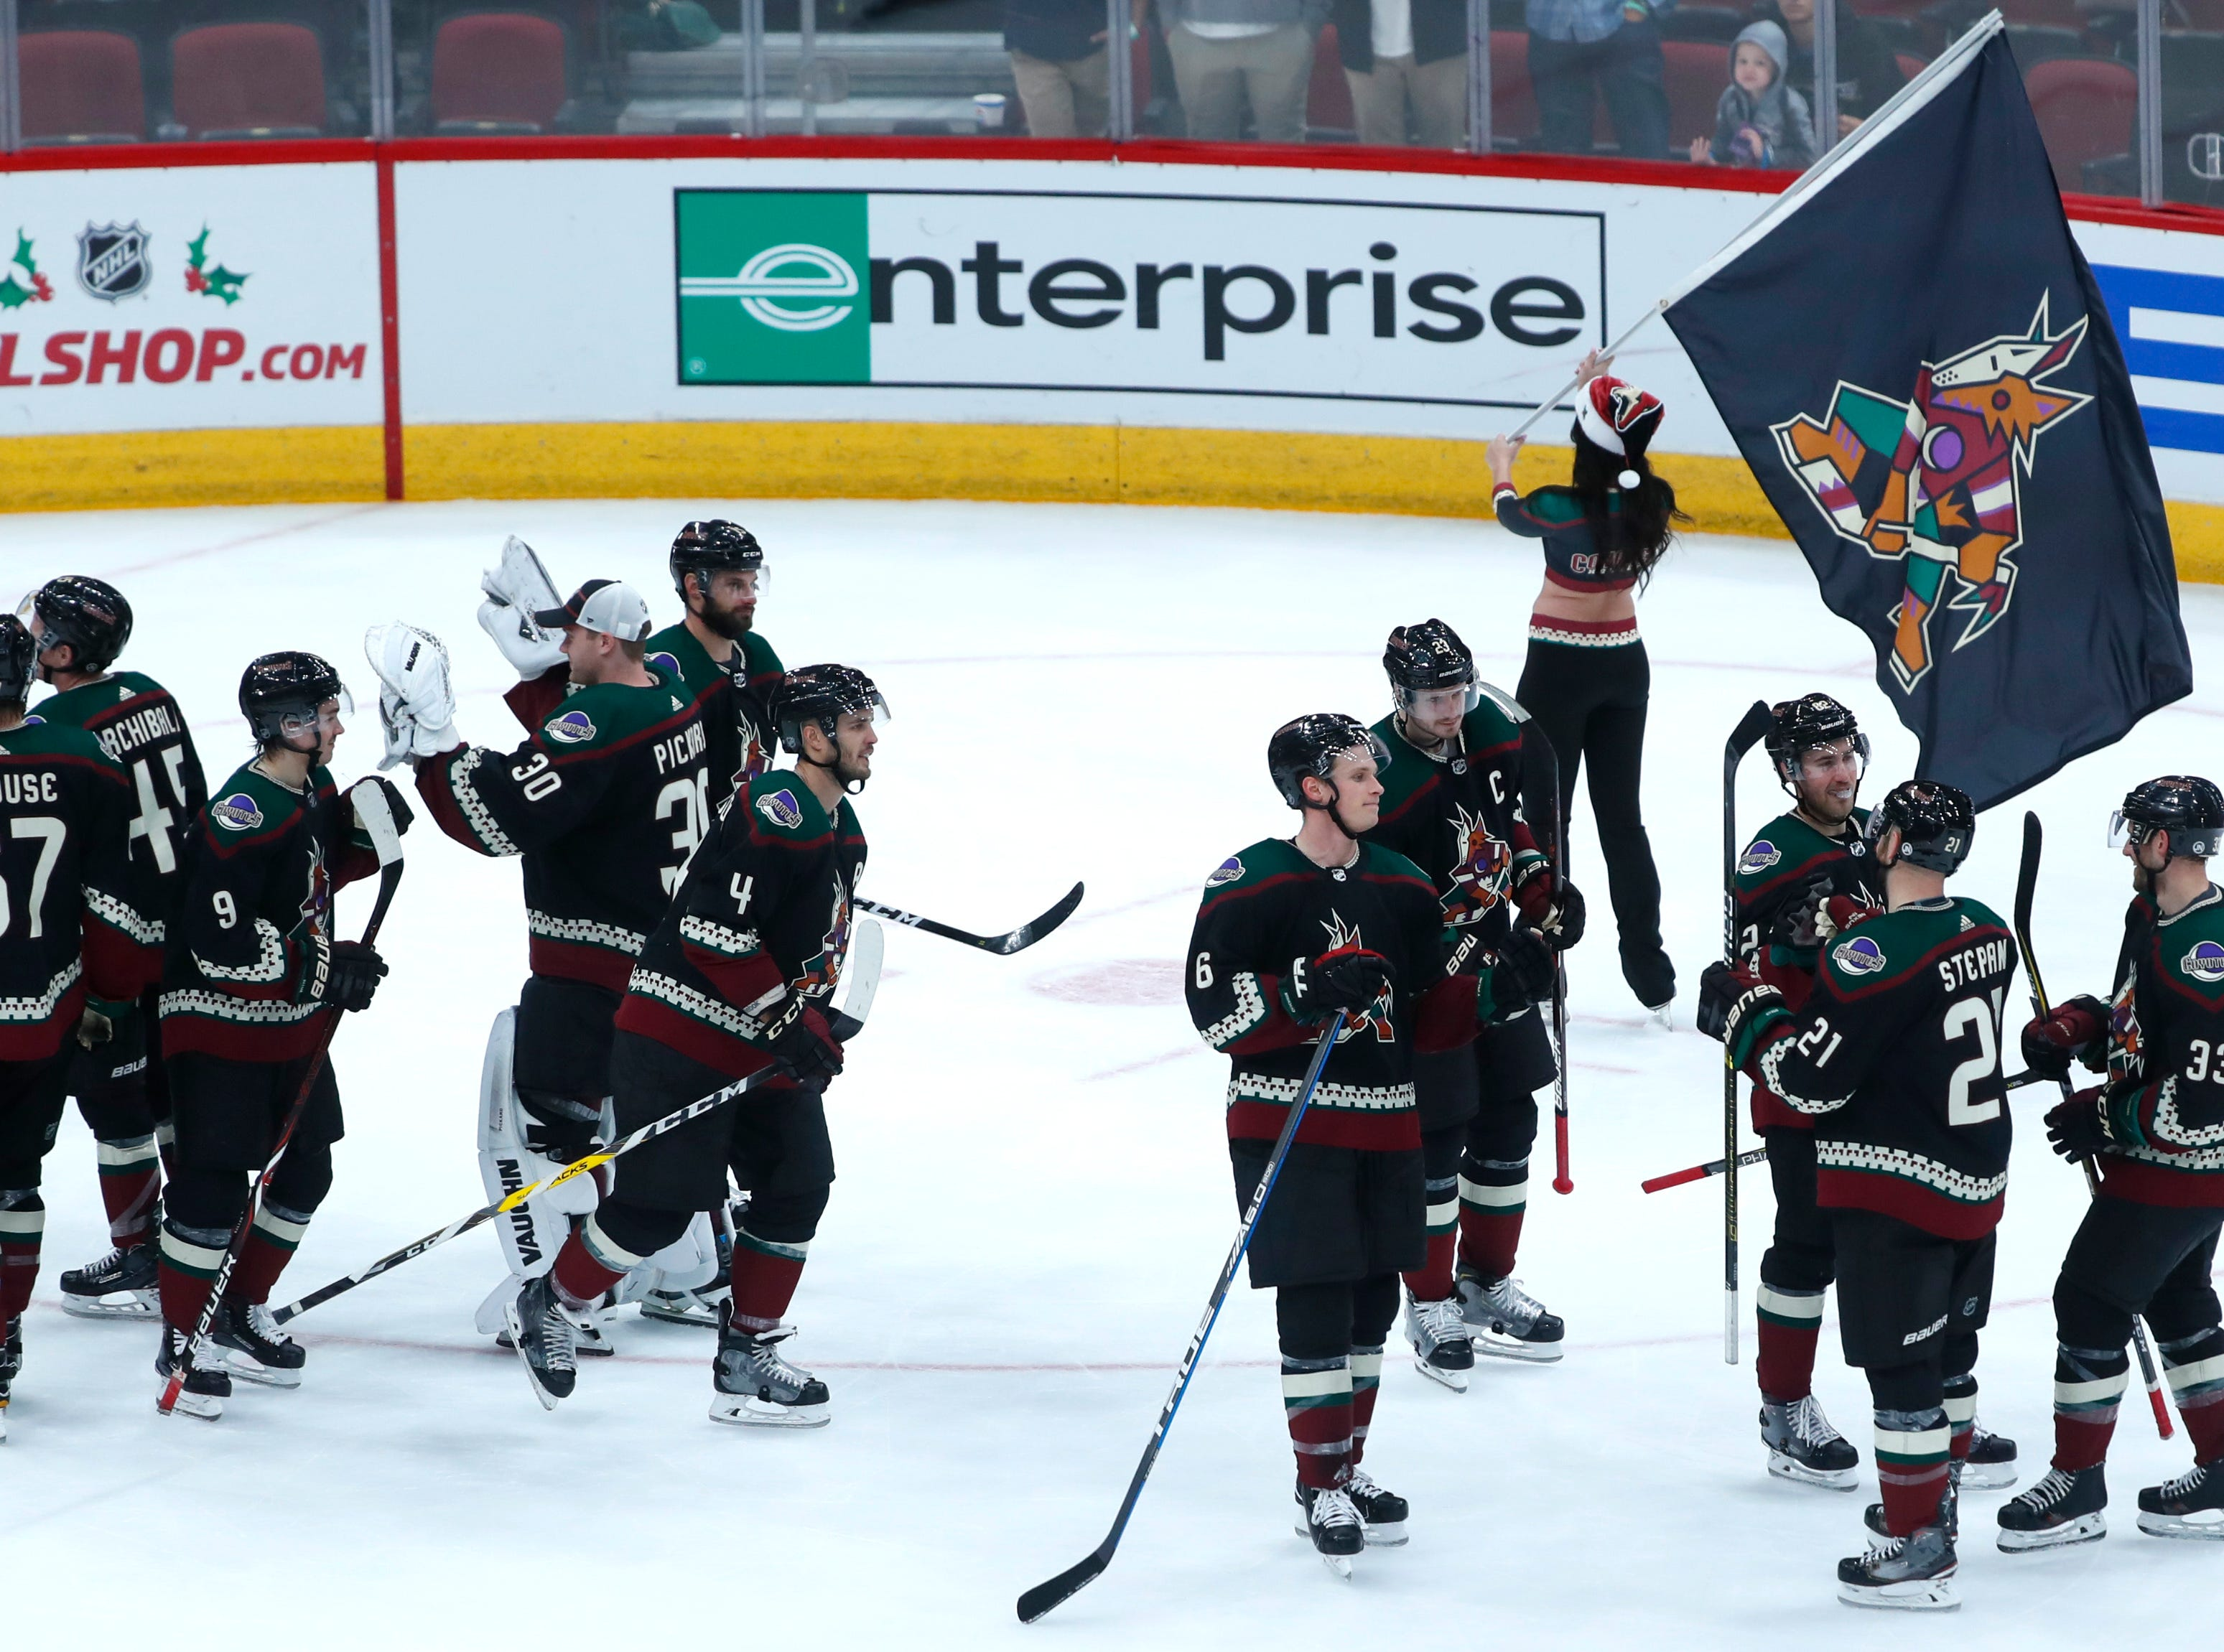 The Coyotes celebrate after the team won 6-1 over the Blues at Gila River Arena in Glendale, Ariz. on December 1, 2018.